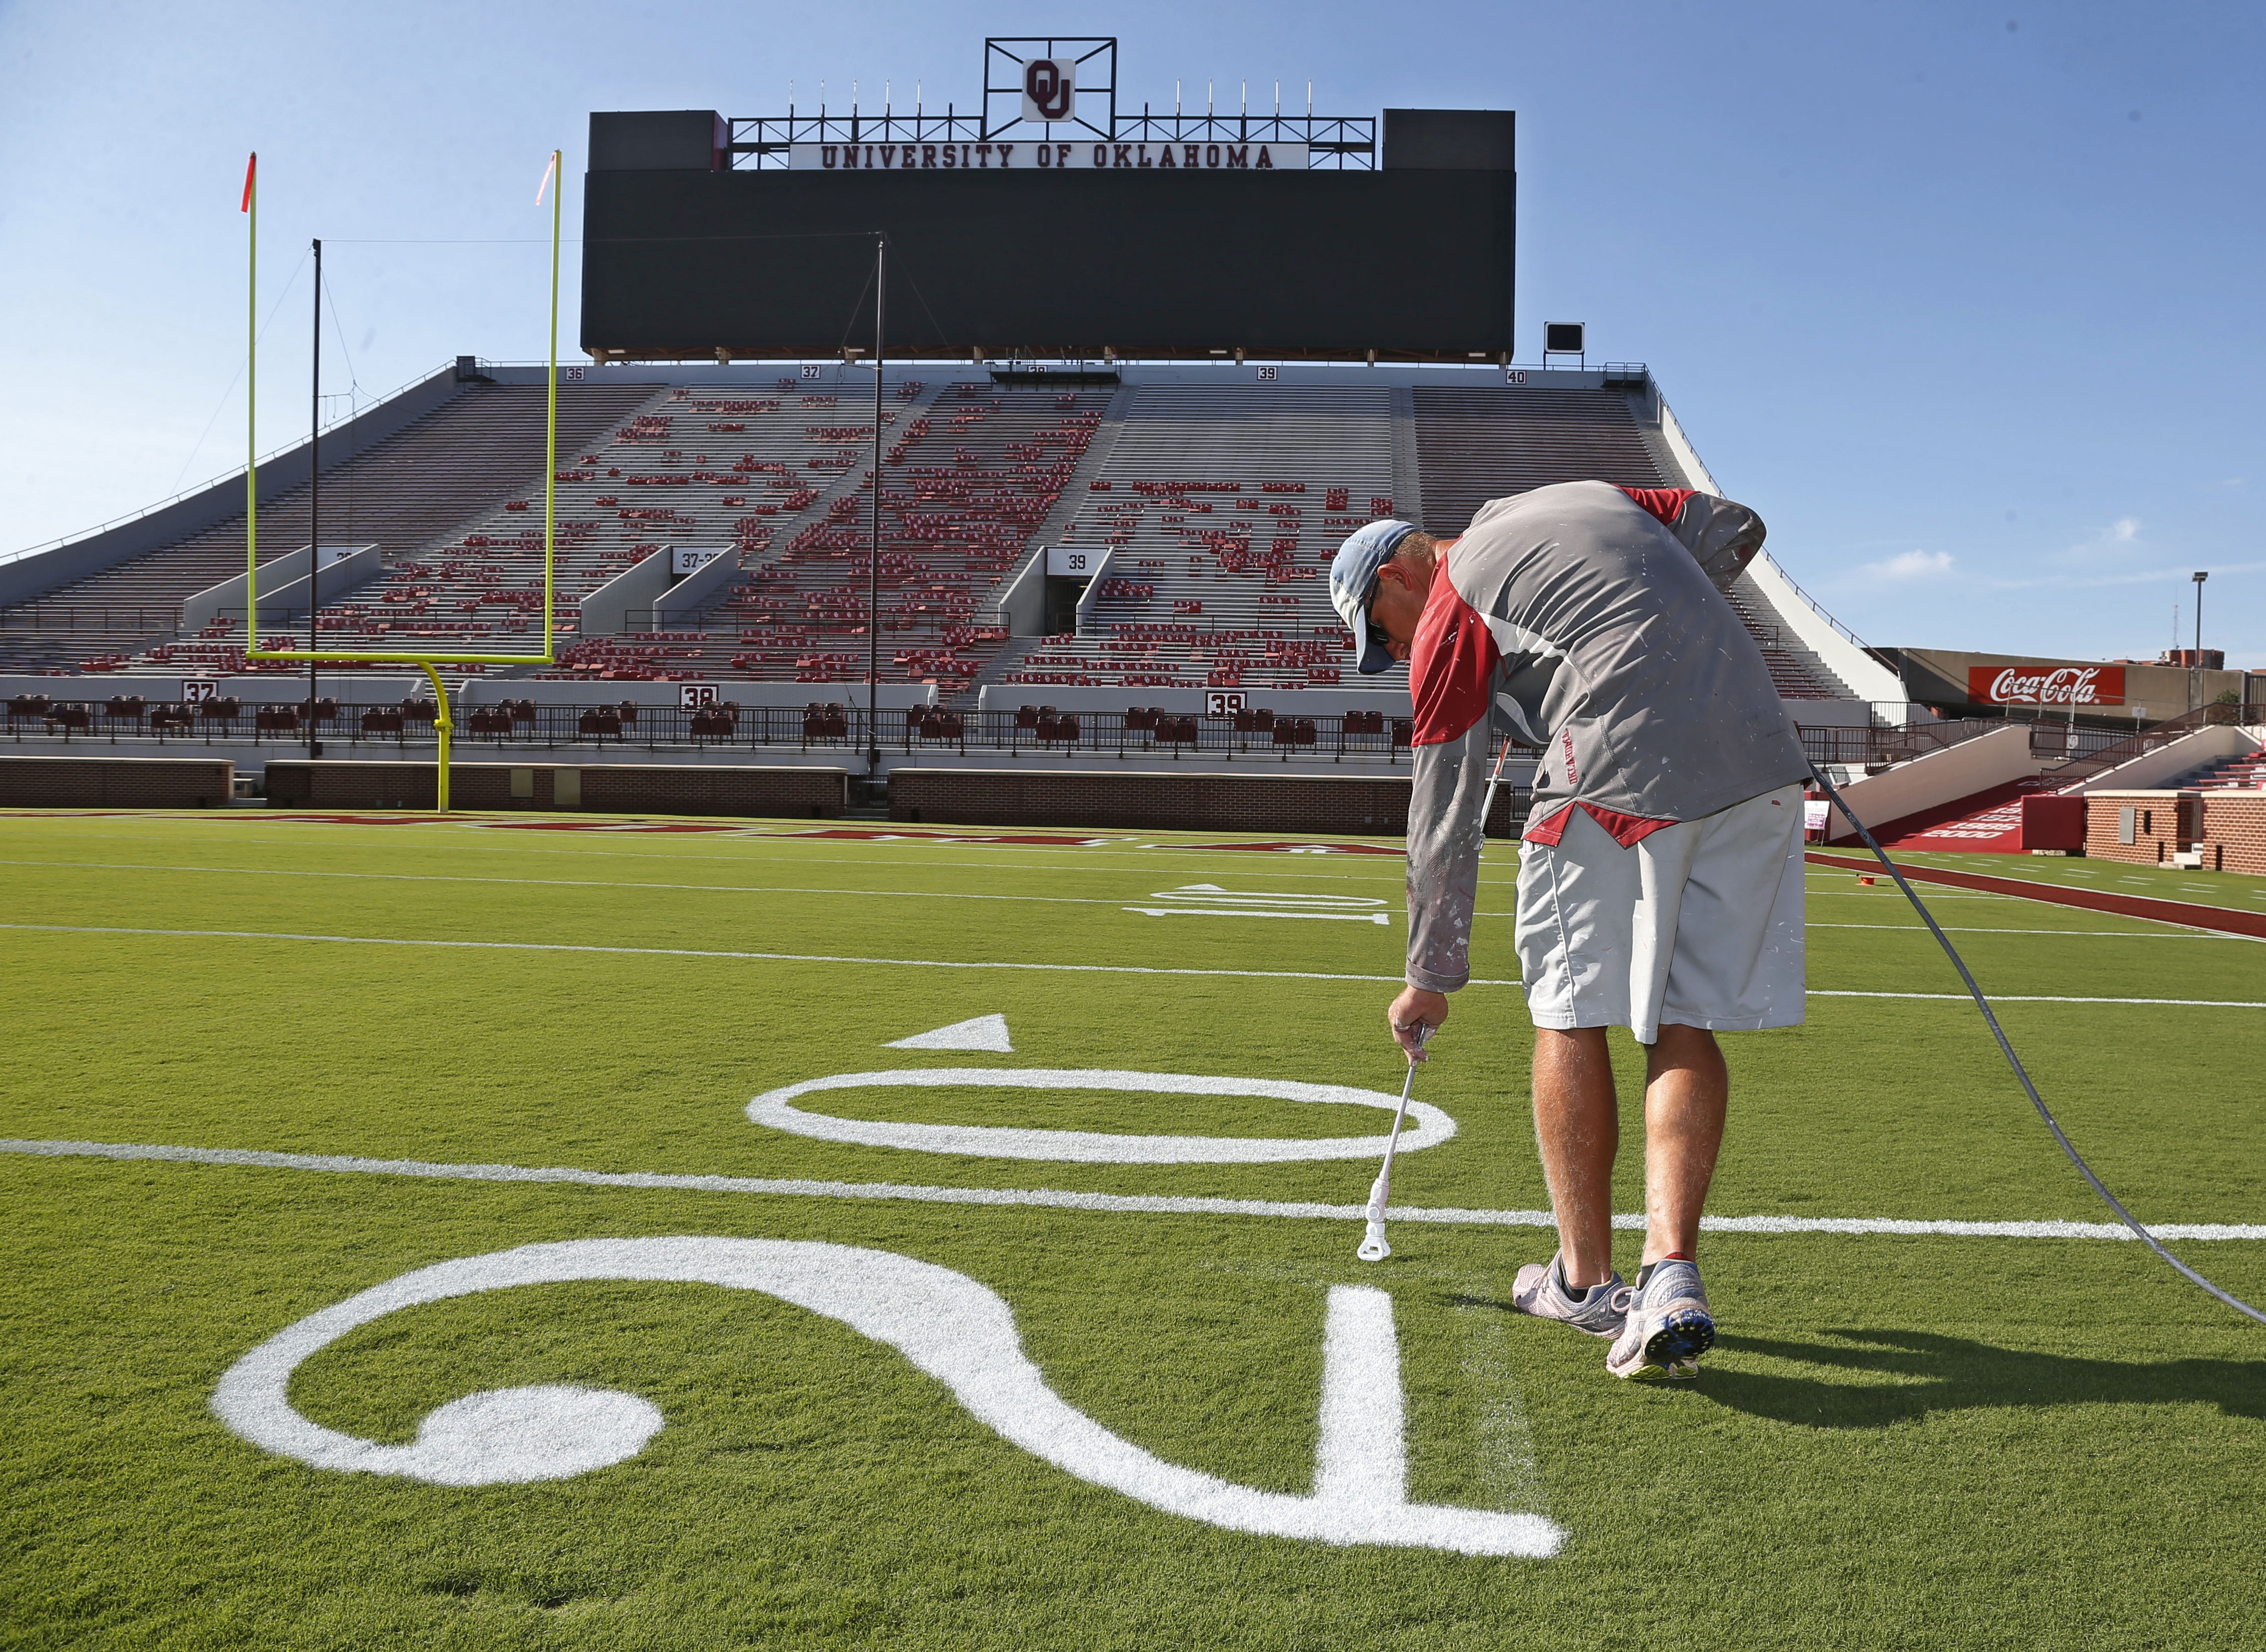 Grounds crew member Cliff Brunken paints yard line numbers on Owen Field in Norman, Okla., Thursday, Sept. 3, 2015, in preparation for Oklahoma's first game of the season. Oklahoma faces Akron on Saturday, Sept. 5, 015. (AP Photo/Sue Ogrocki)